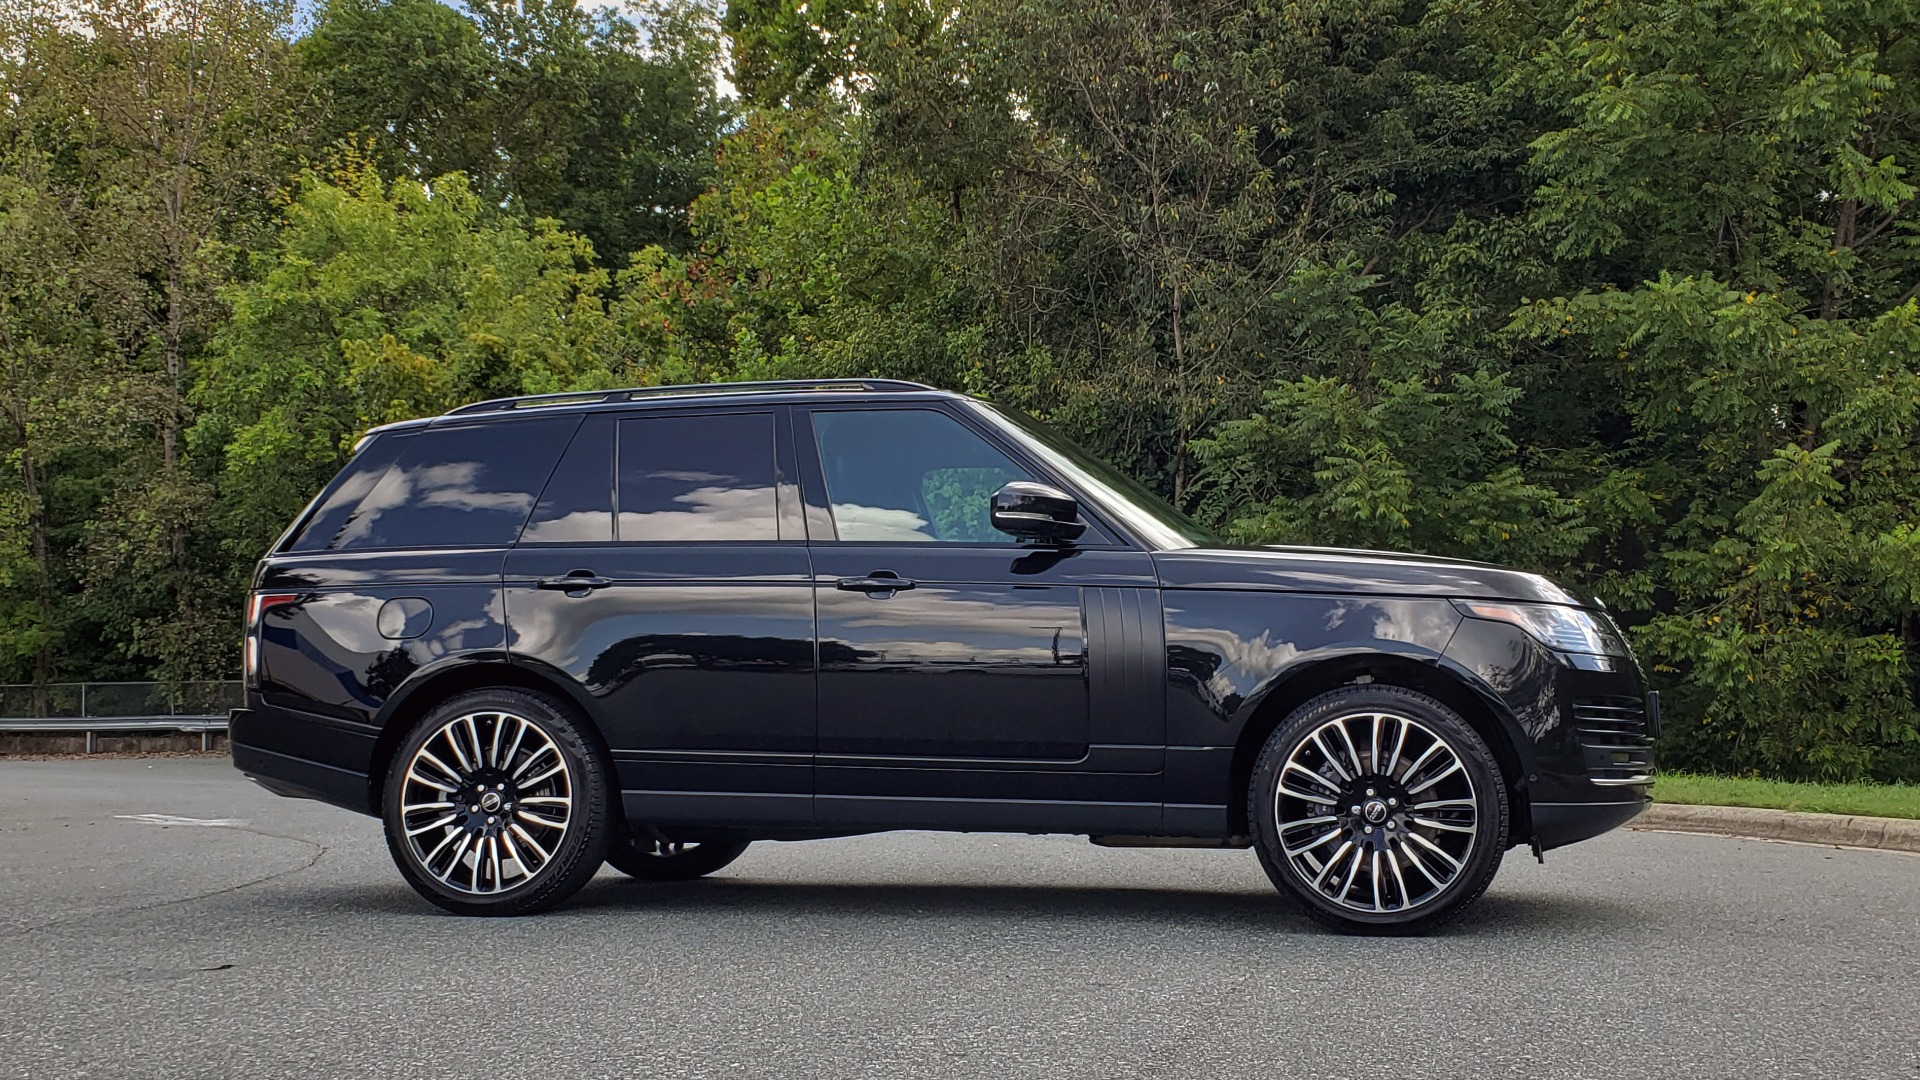 Used 2019 Land Rover RANGE ROVER SCV8 / NAV / PANO-ROOF / MERIDIAN / REARVIEW for sale Sold at Formula Imports in Charlotte NC 28227 10